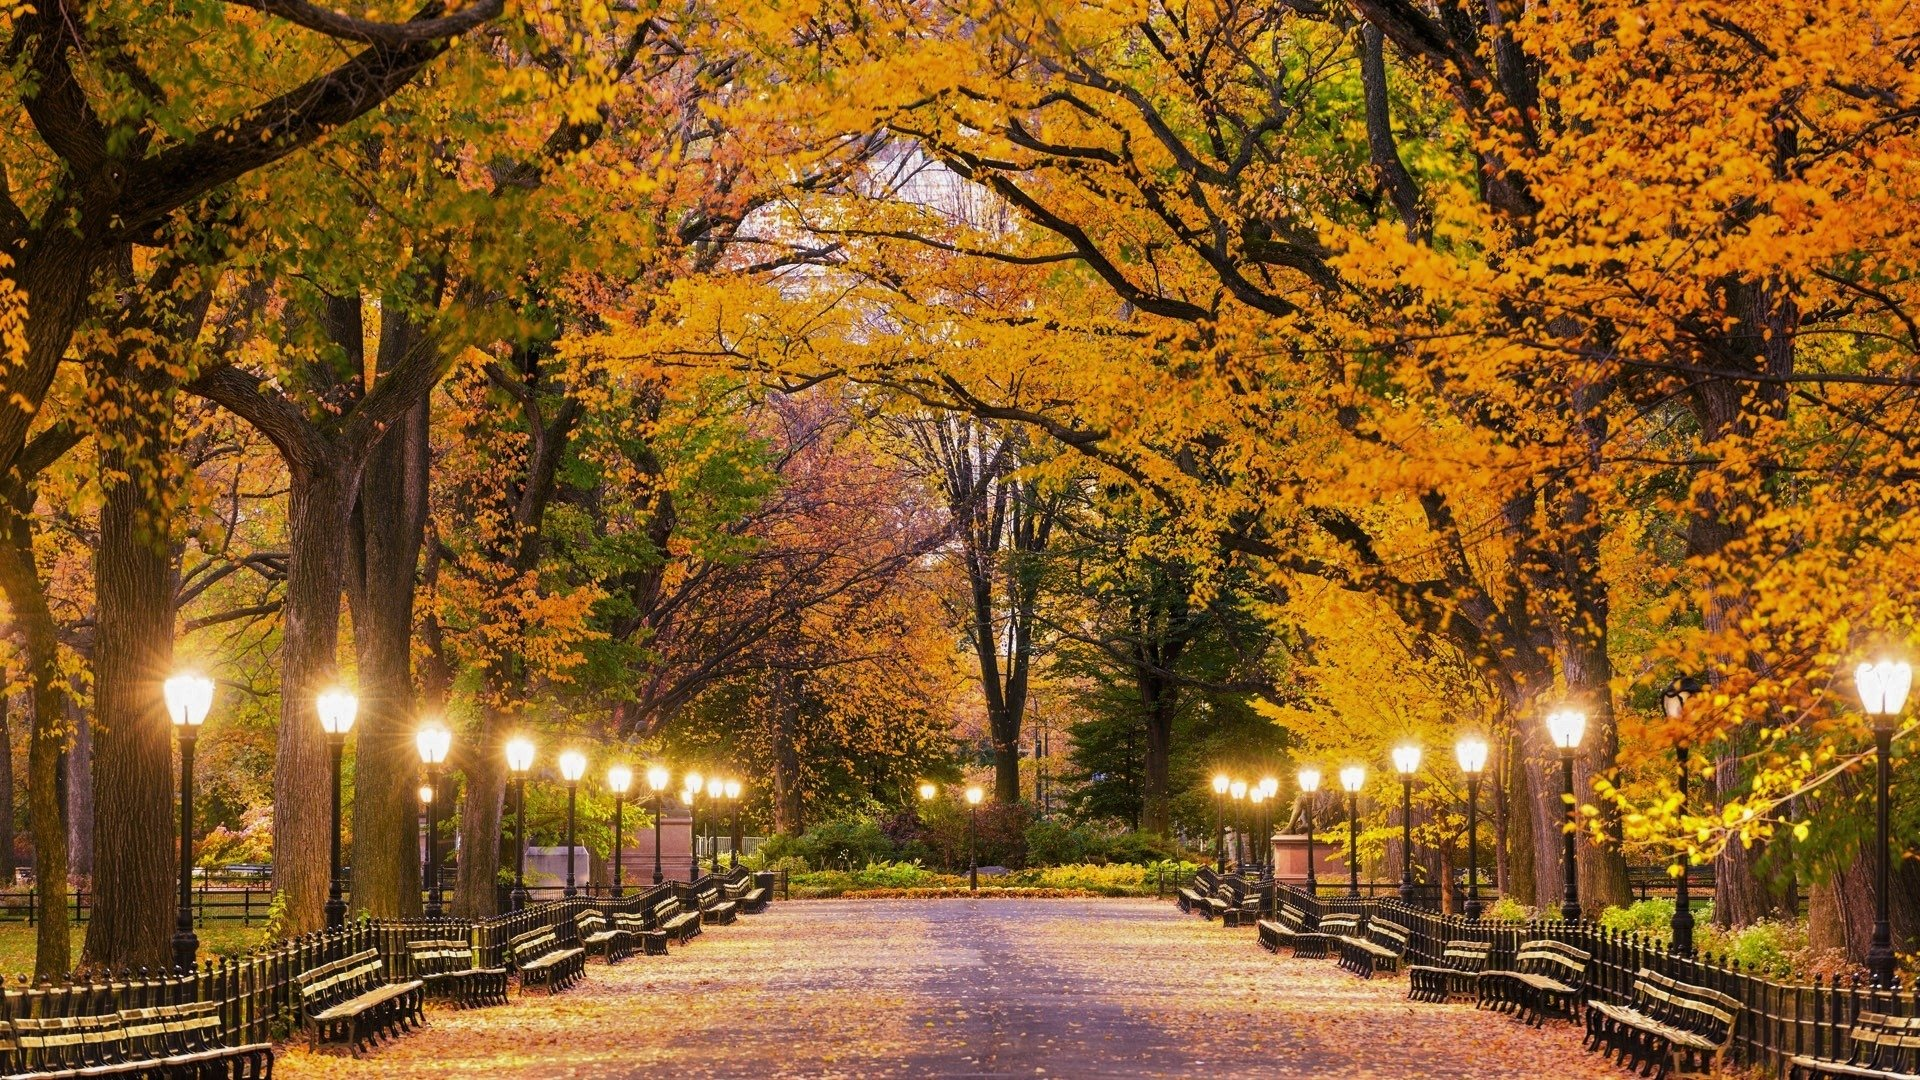 Fall Foliage Wallpaper Widescreen Central Park In Autumn Hd Wallpaper Background Image